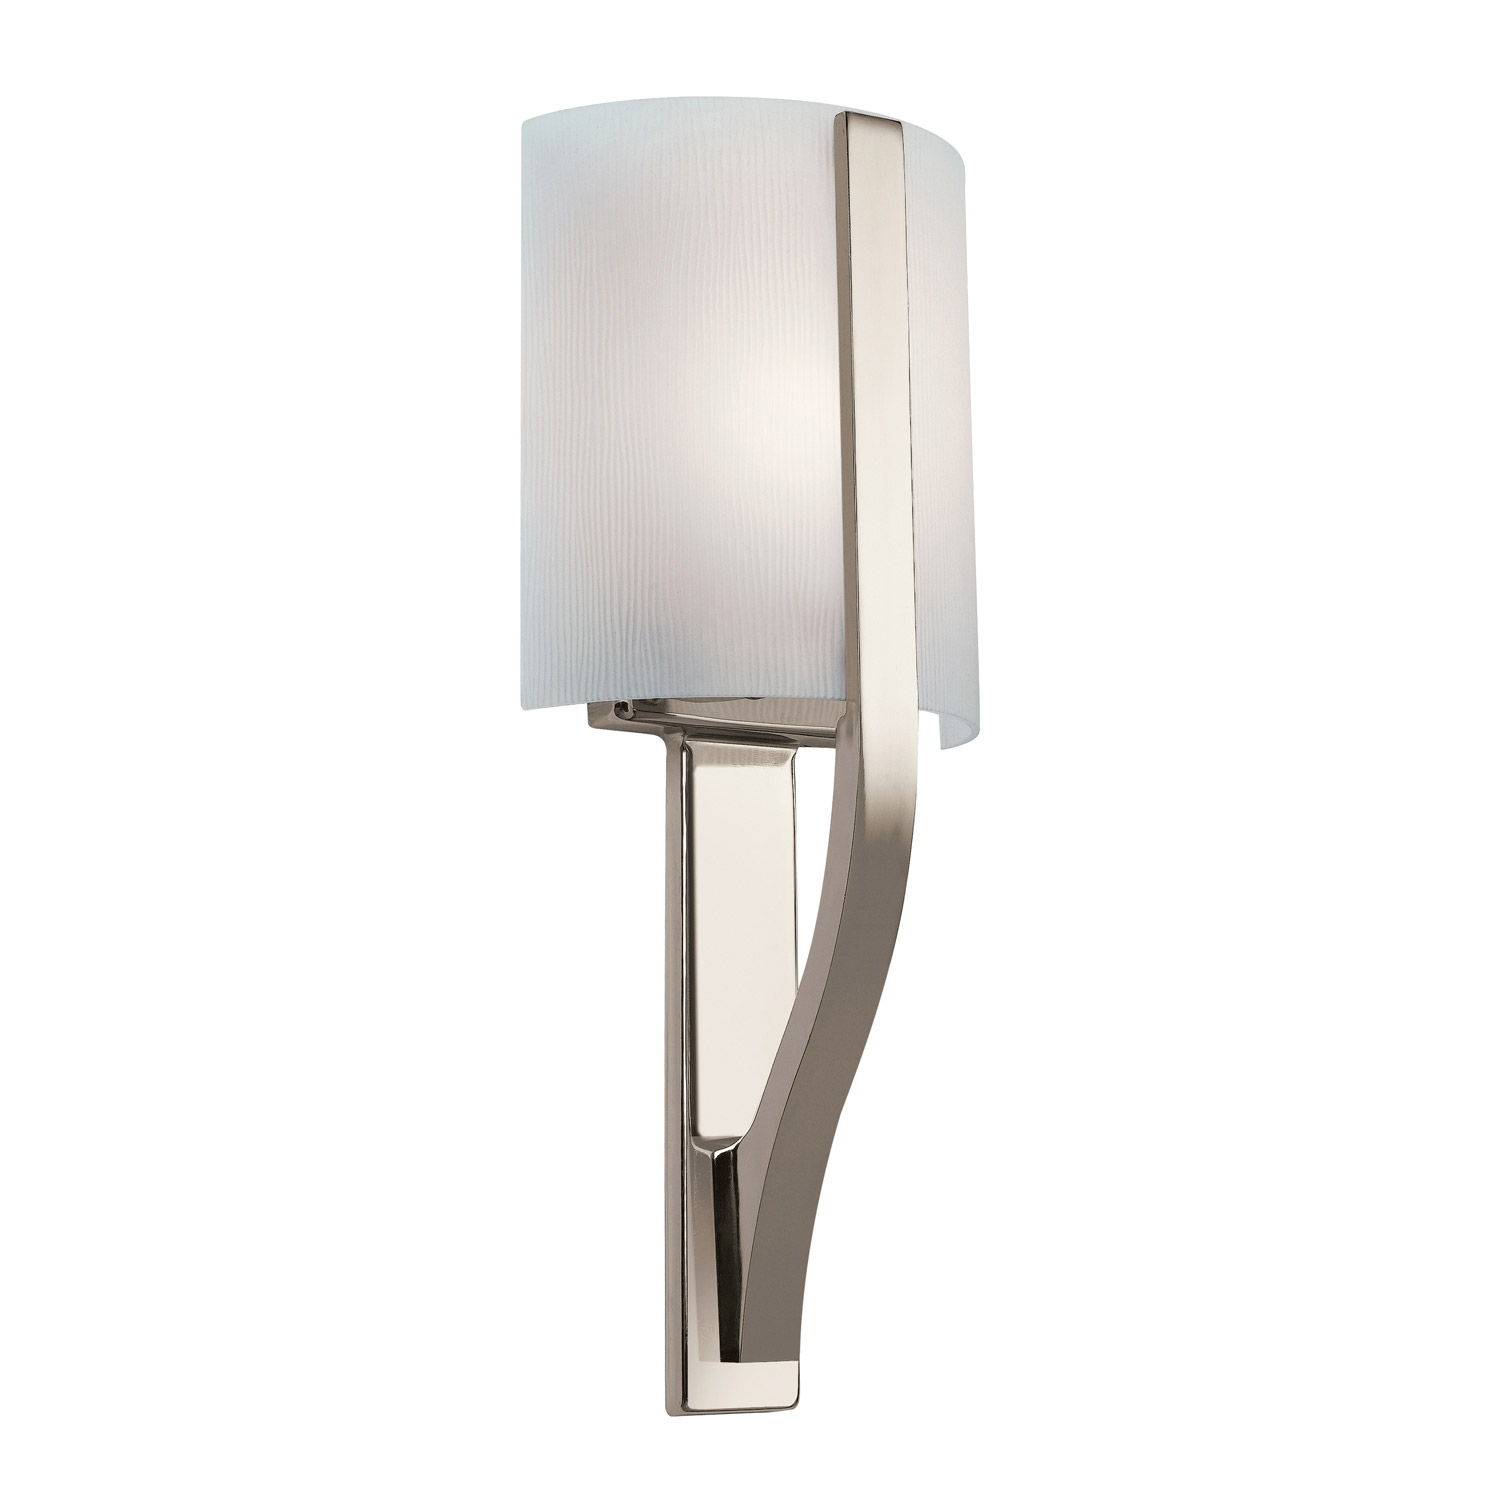 Wall Sconces Kichler : Kichler 10686PN Freeport Wall Sconce